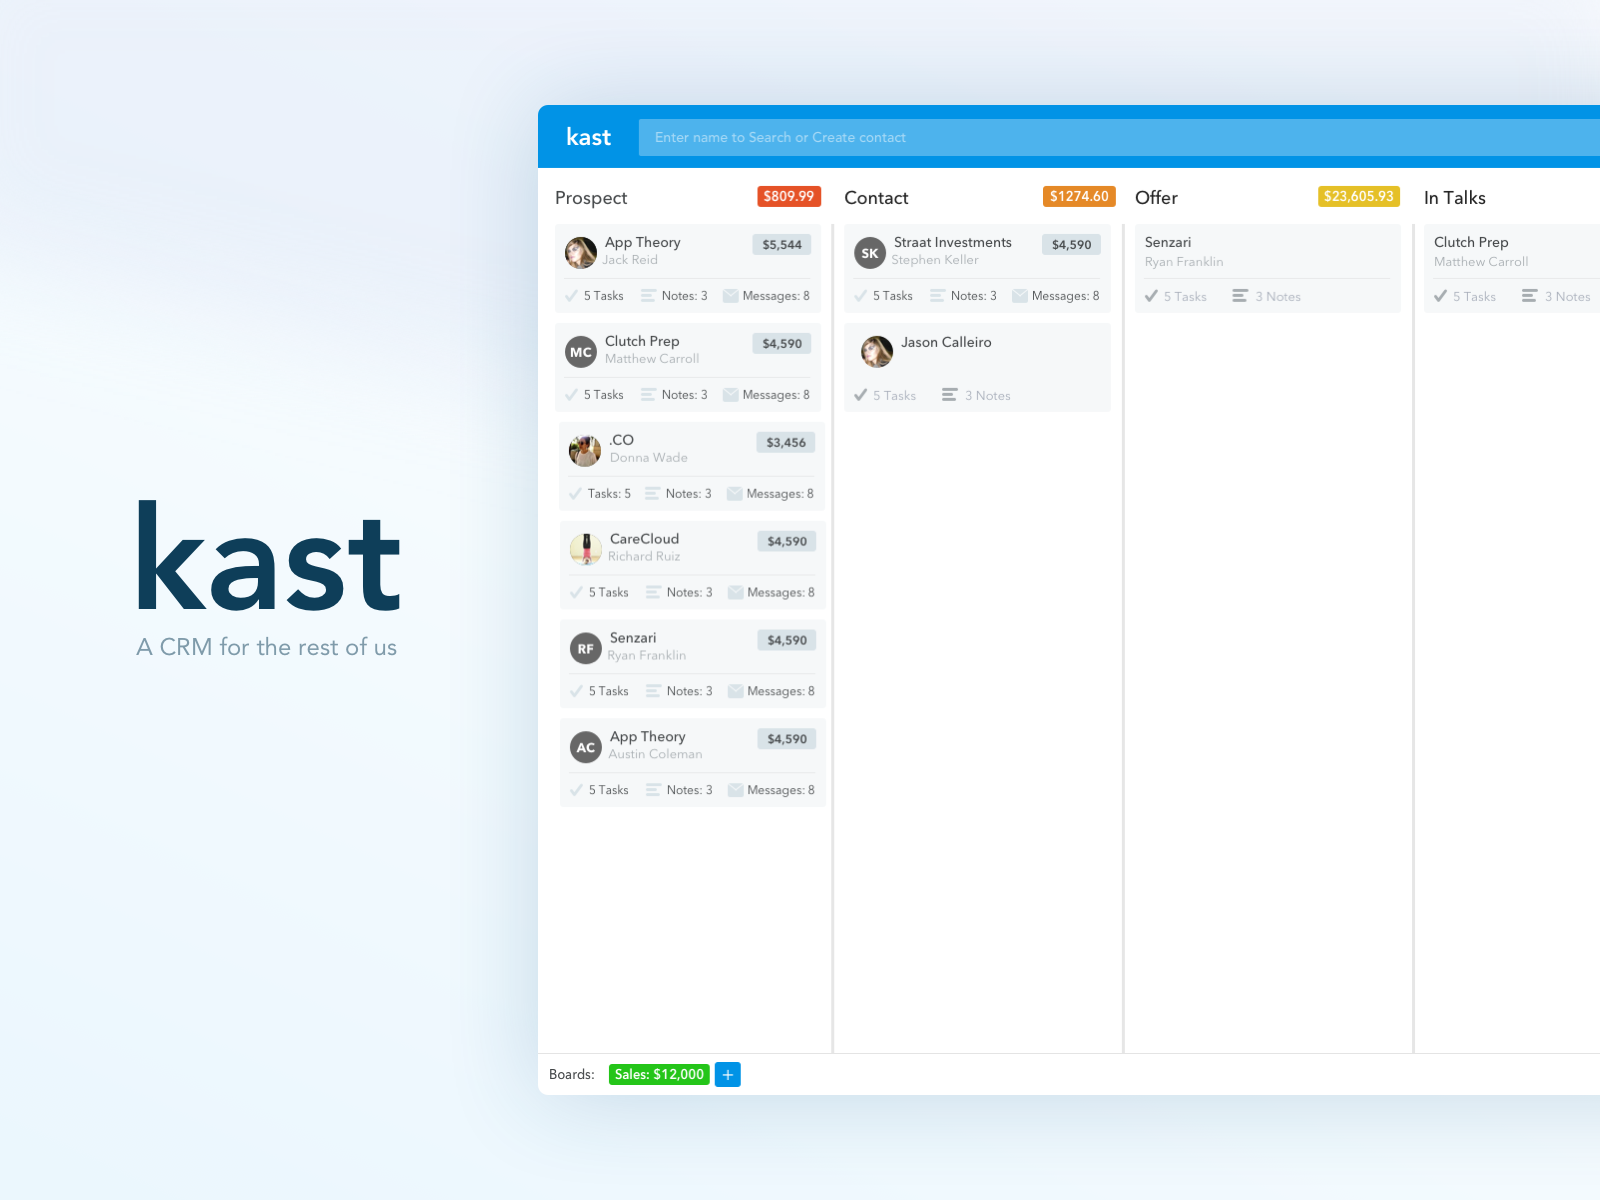 Kast A Crm For The Rest Of Us By Jason Calleiro For